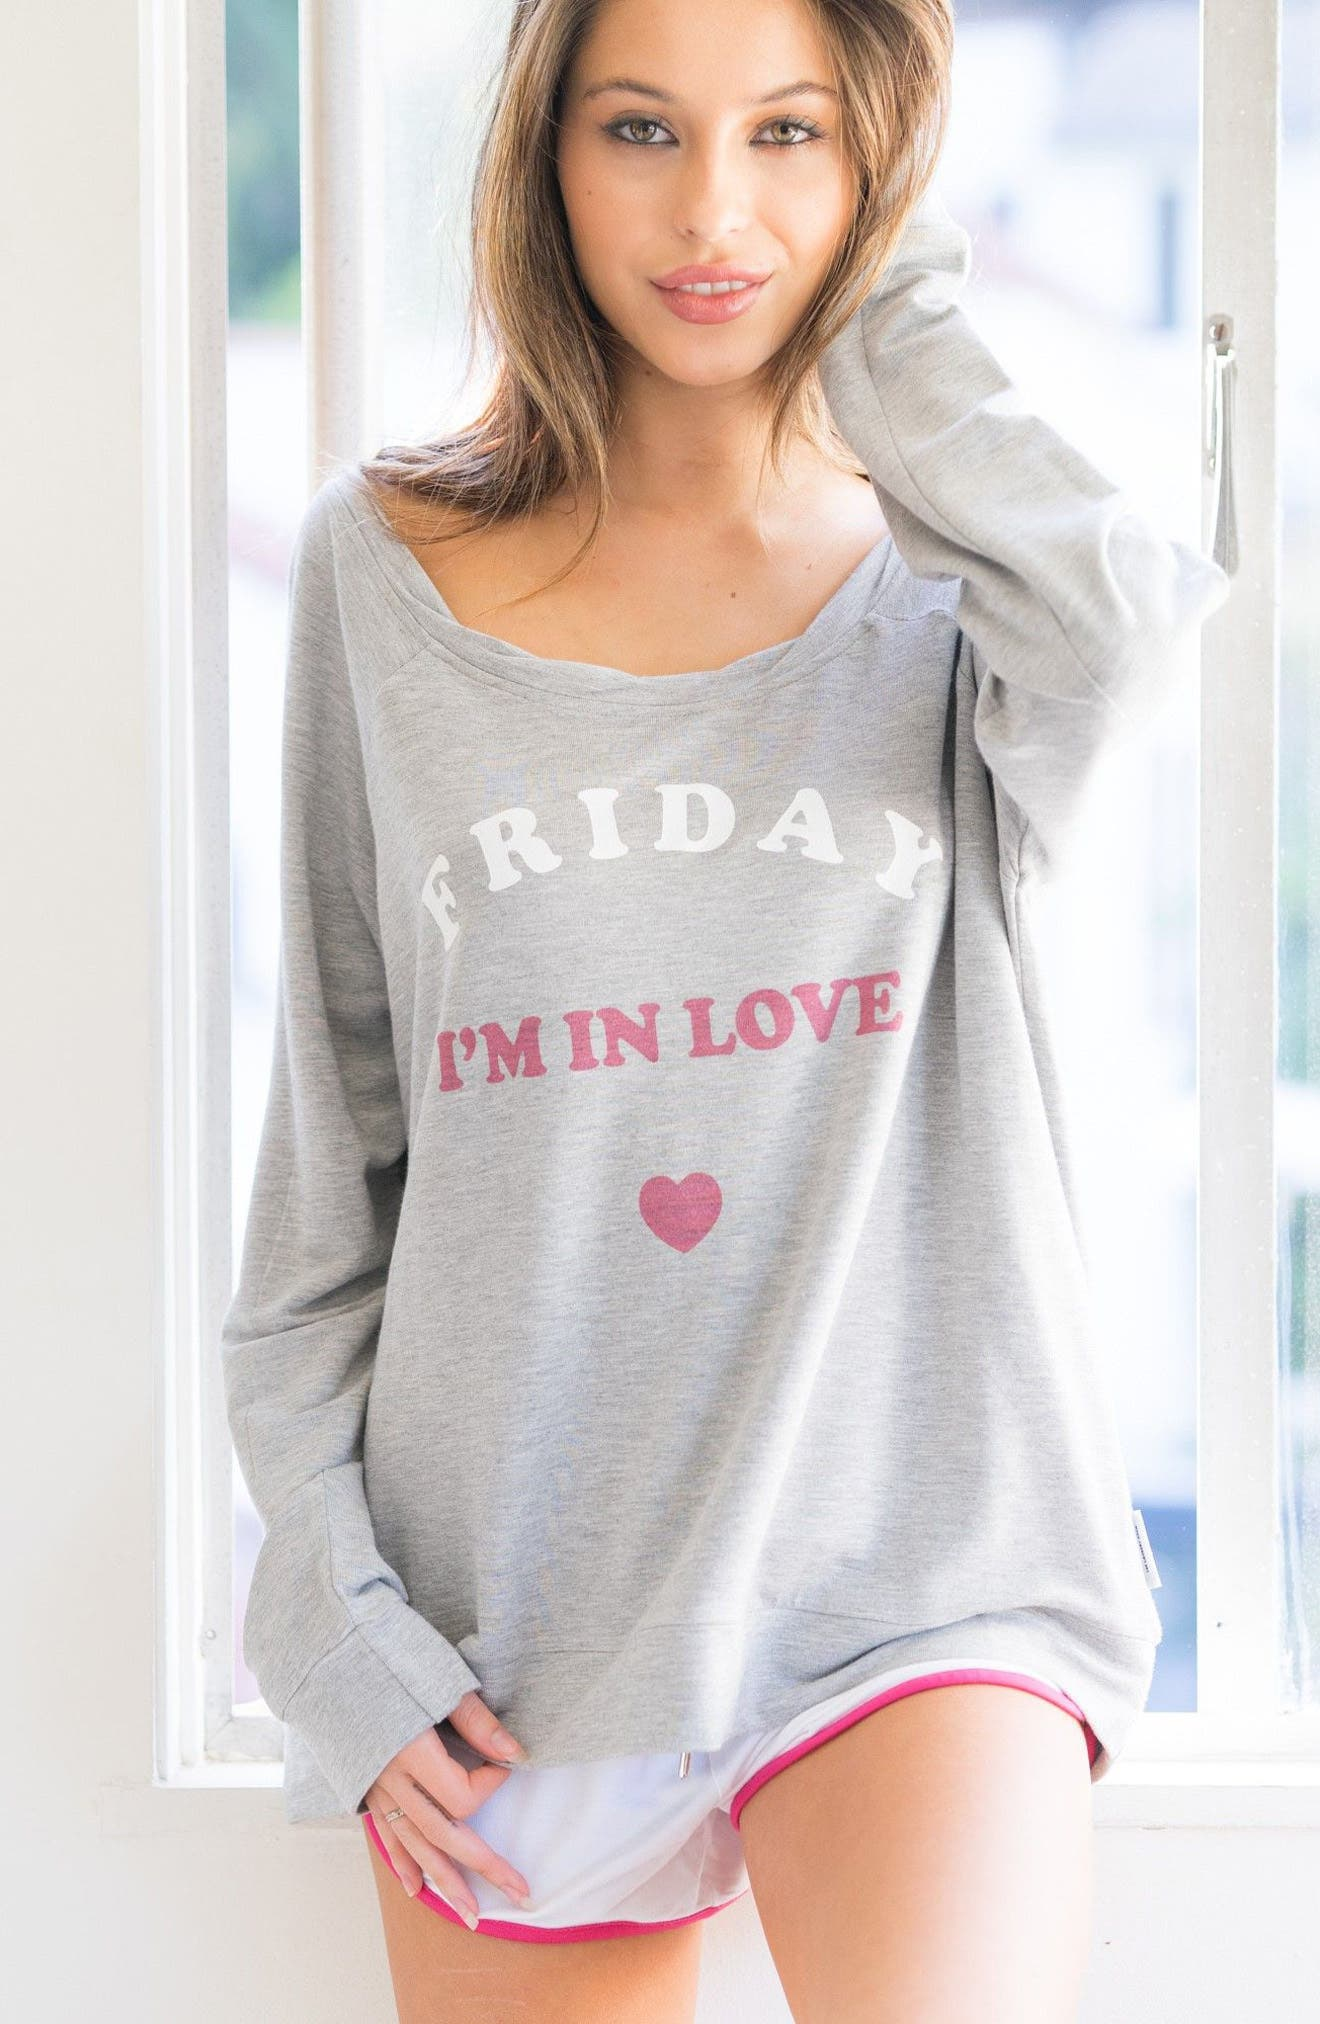 Friday I'm In Love Sweatshirt,                             Alternate thumbnail 2, color,                             Heather